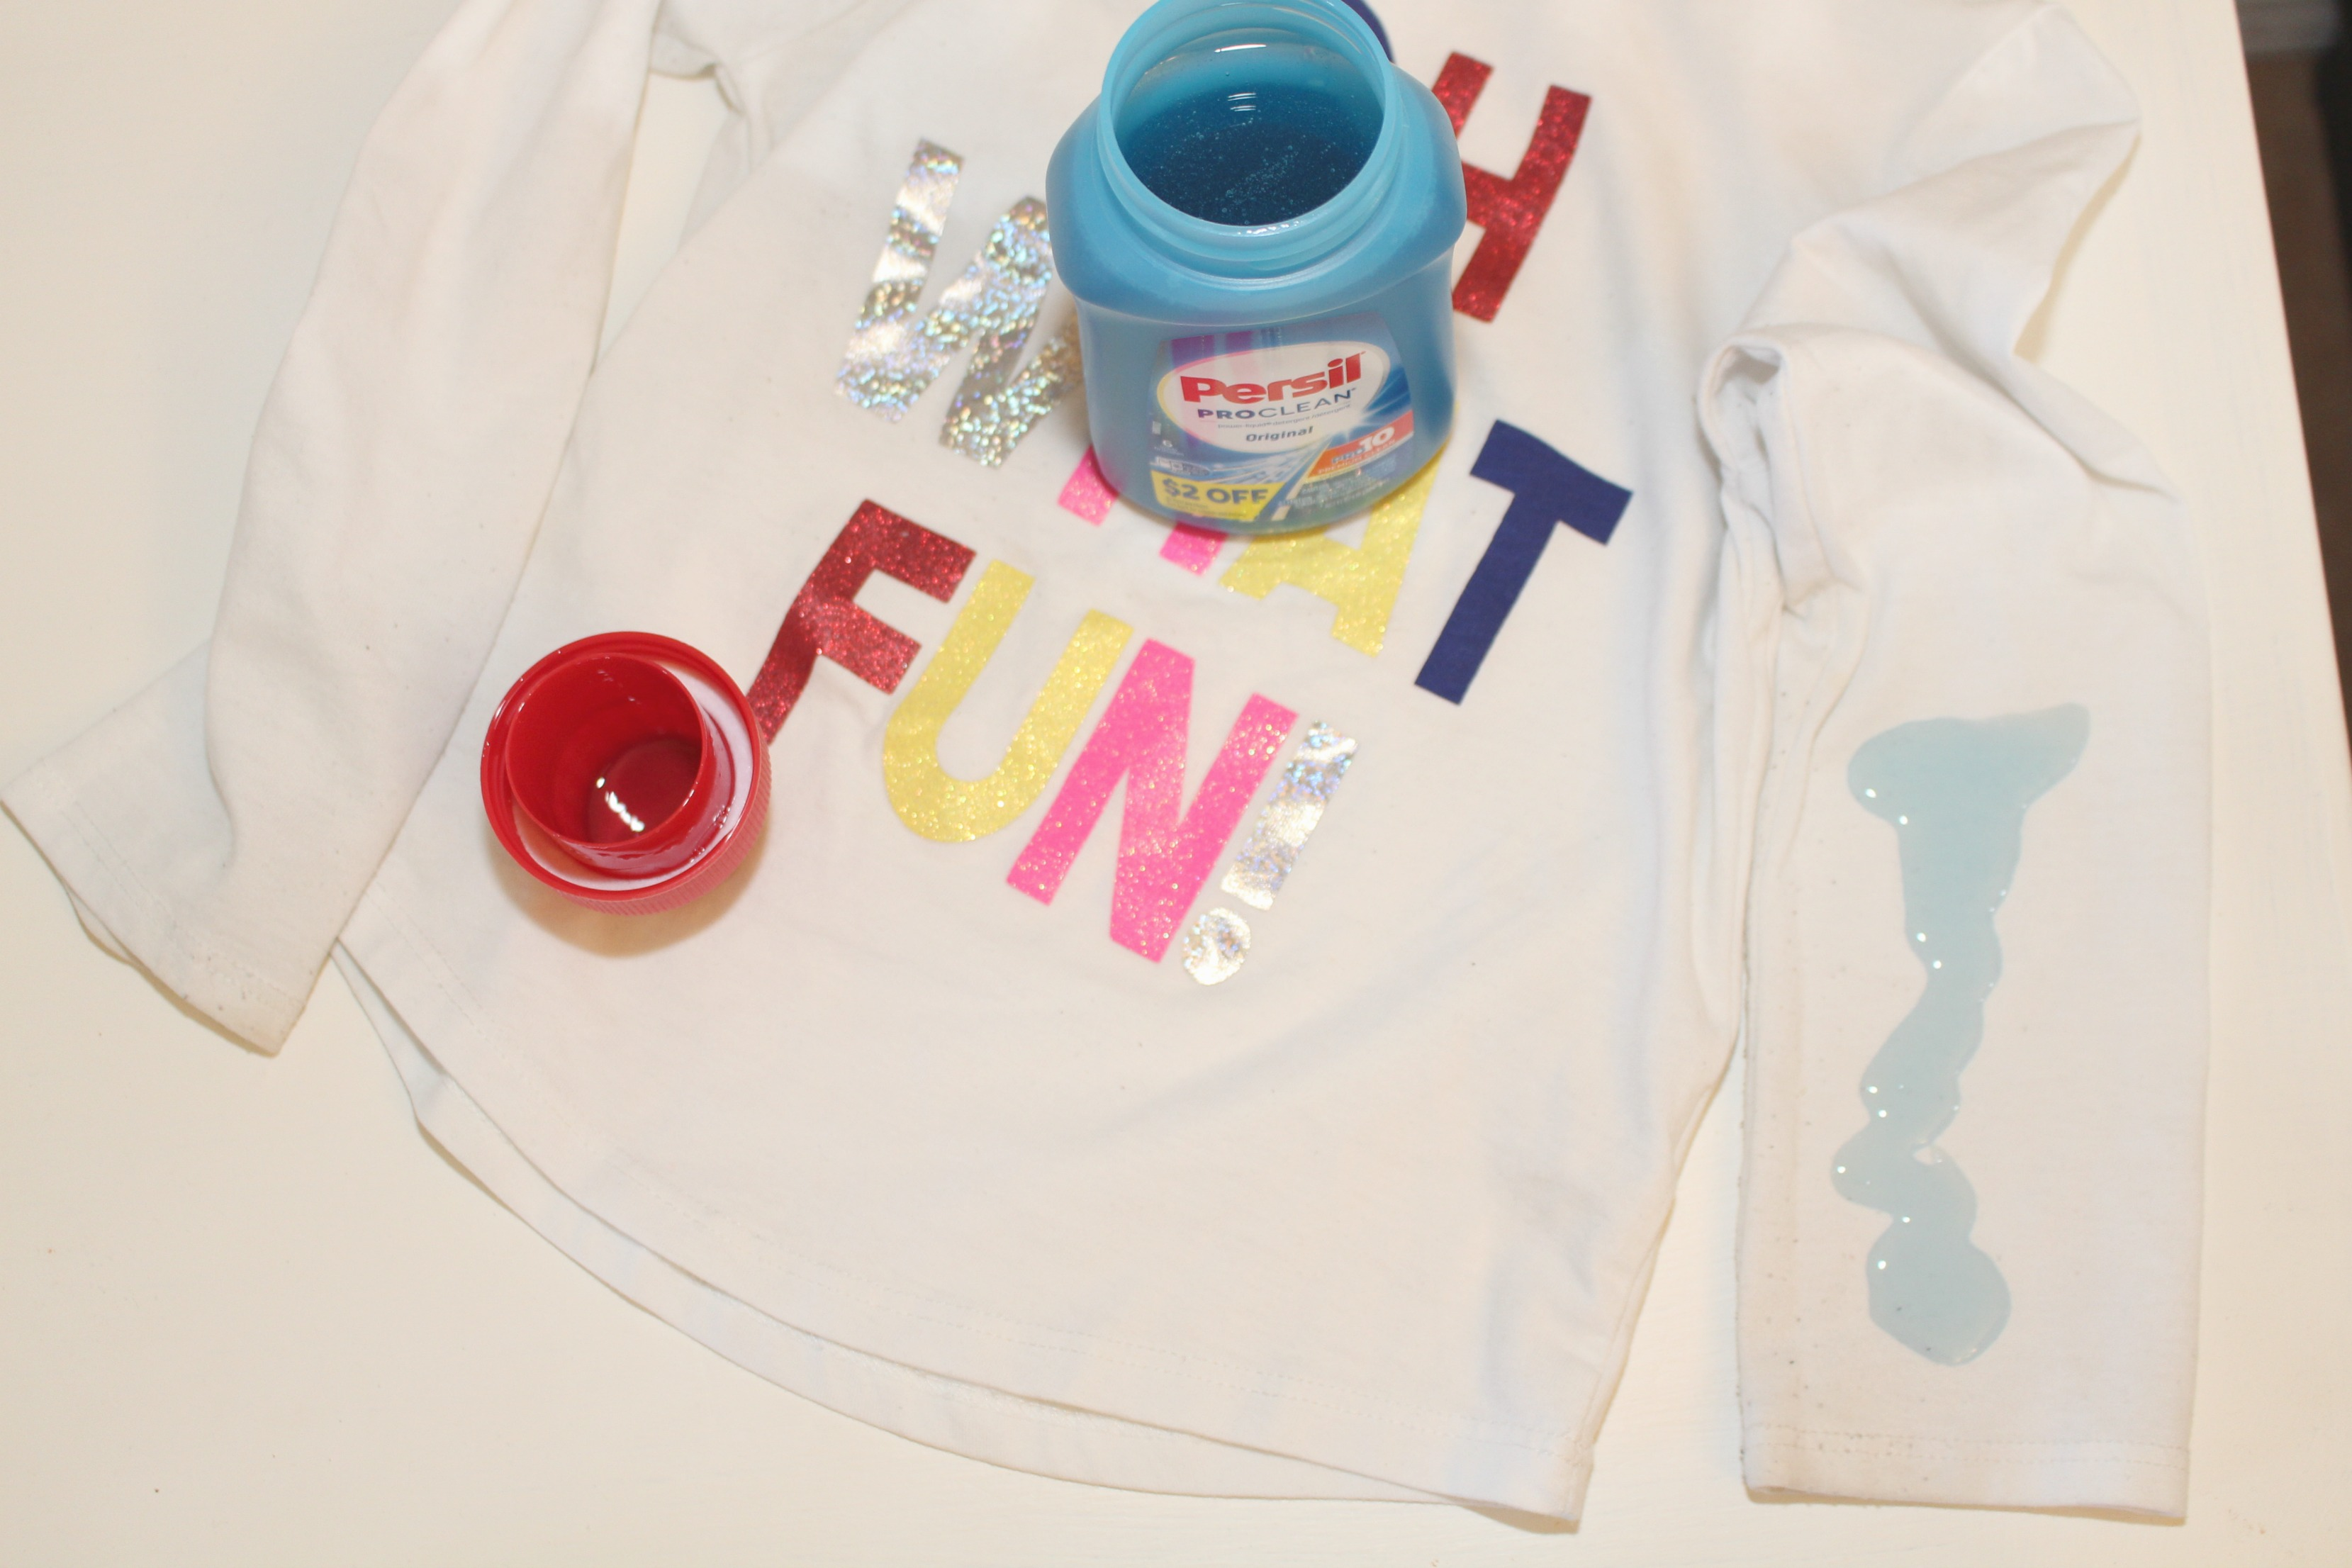 Holiday Fun + Tackling Stains with Persil® Trial Size Found at Target